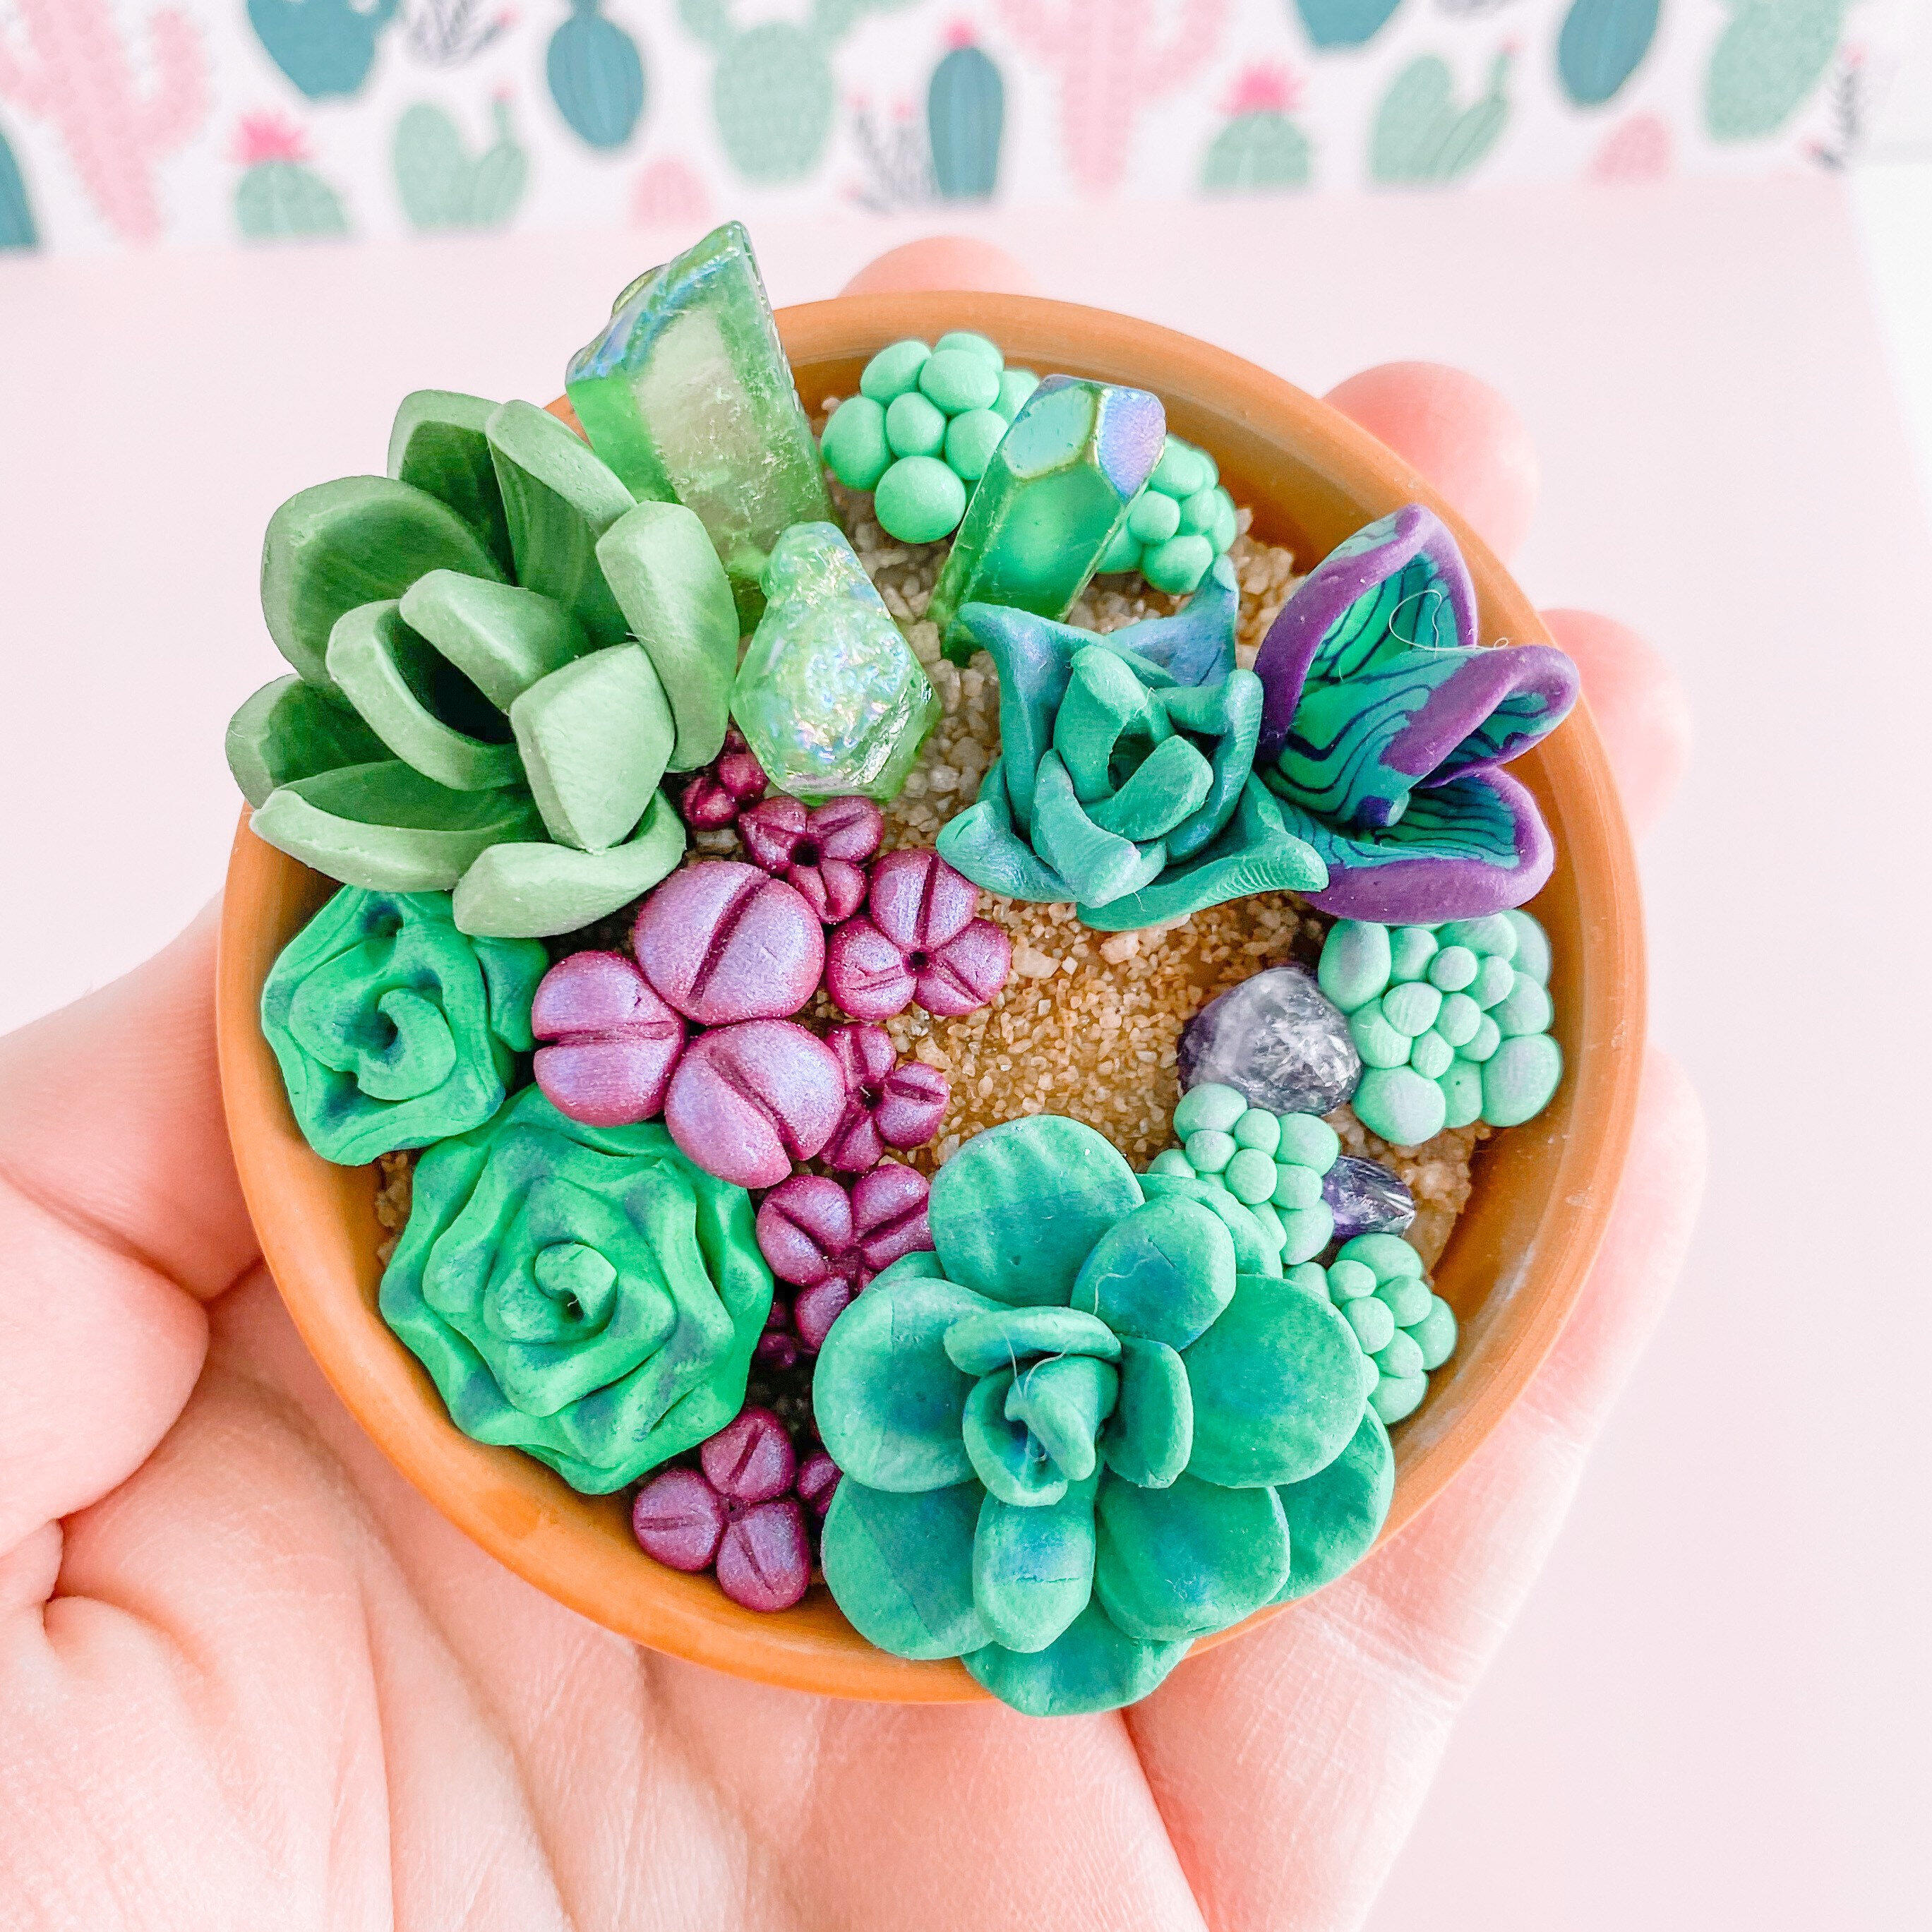 fireflyFrippery Miniature Faux Succulent and Crystal Garden in Hand